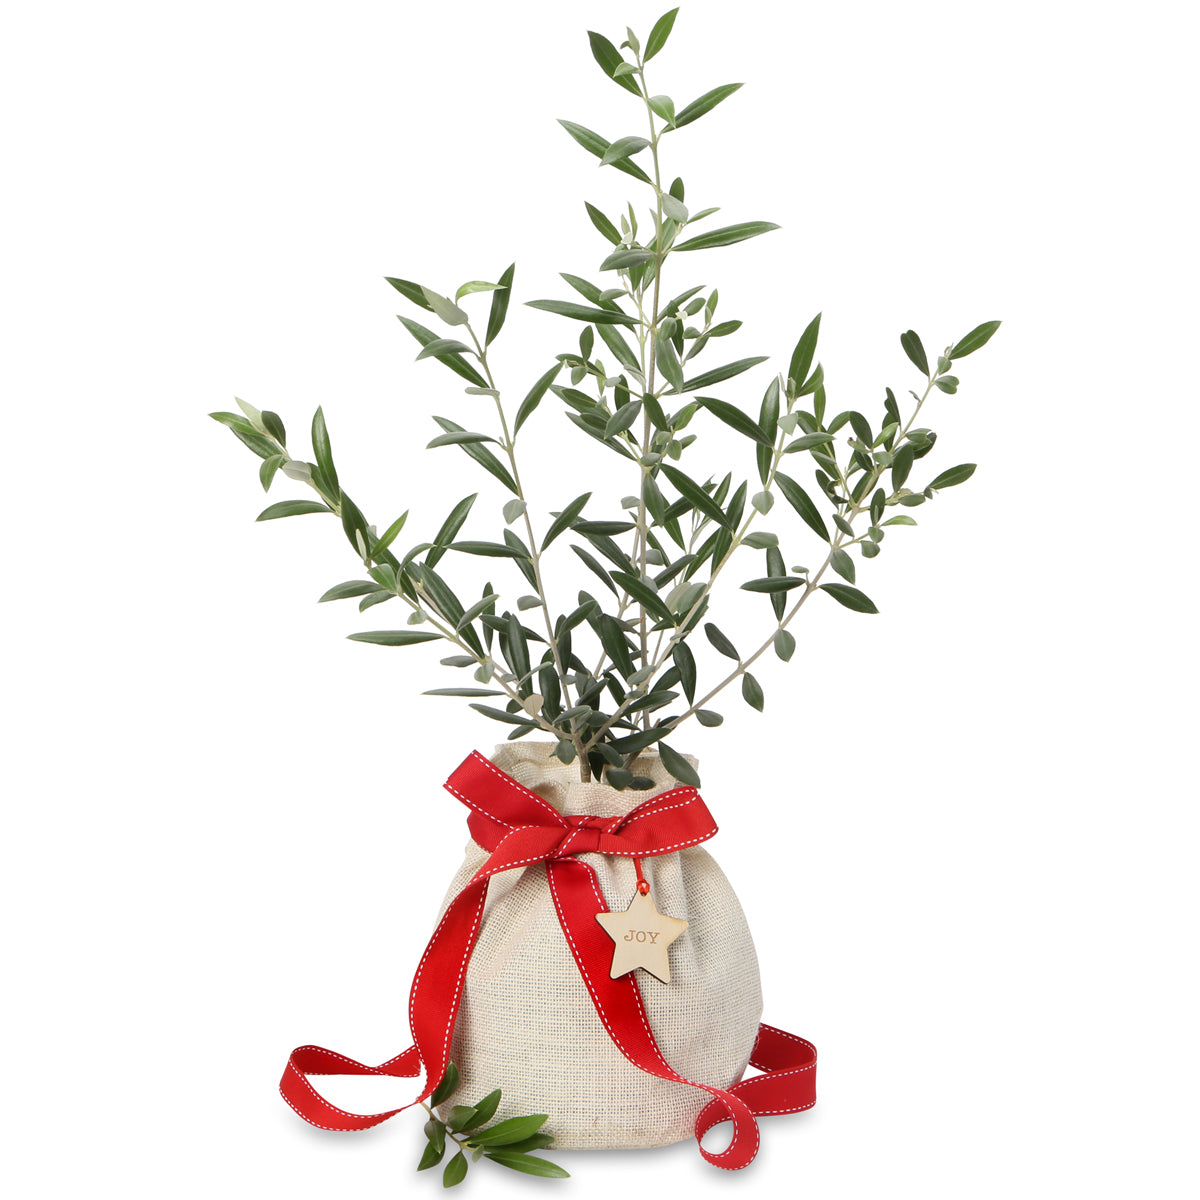 Christmas olive gift tree